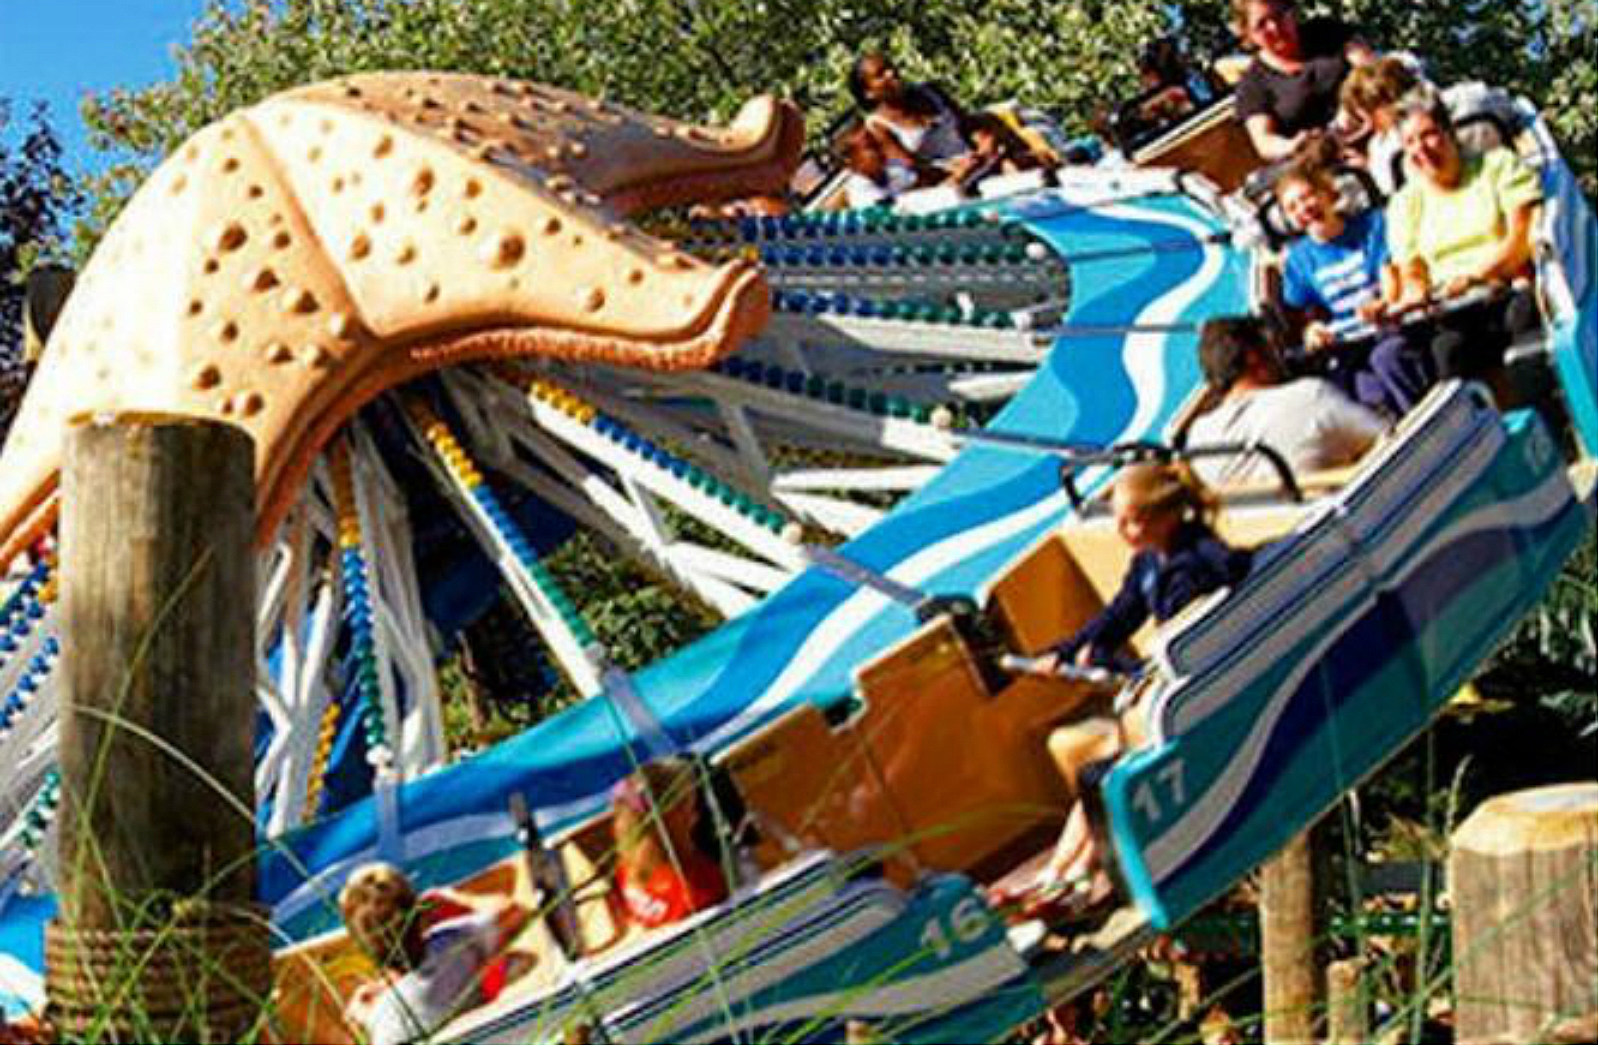 canobie lake park opens this weekend